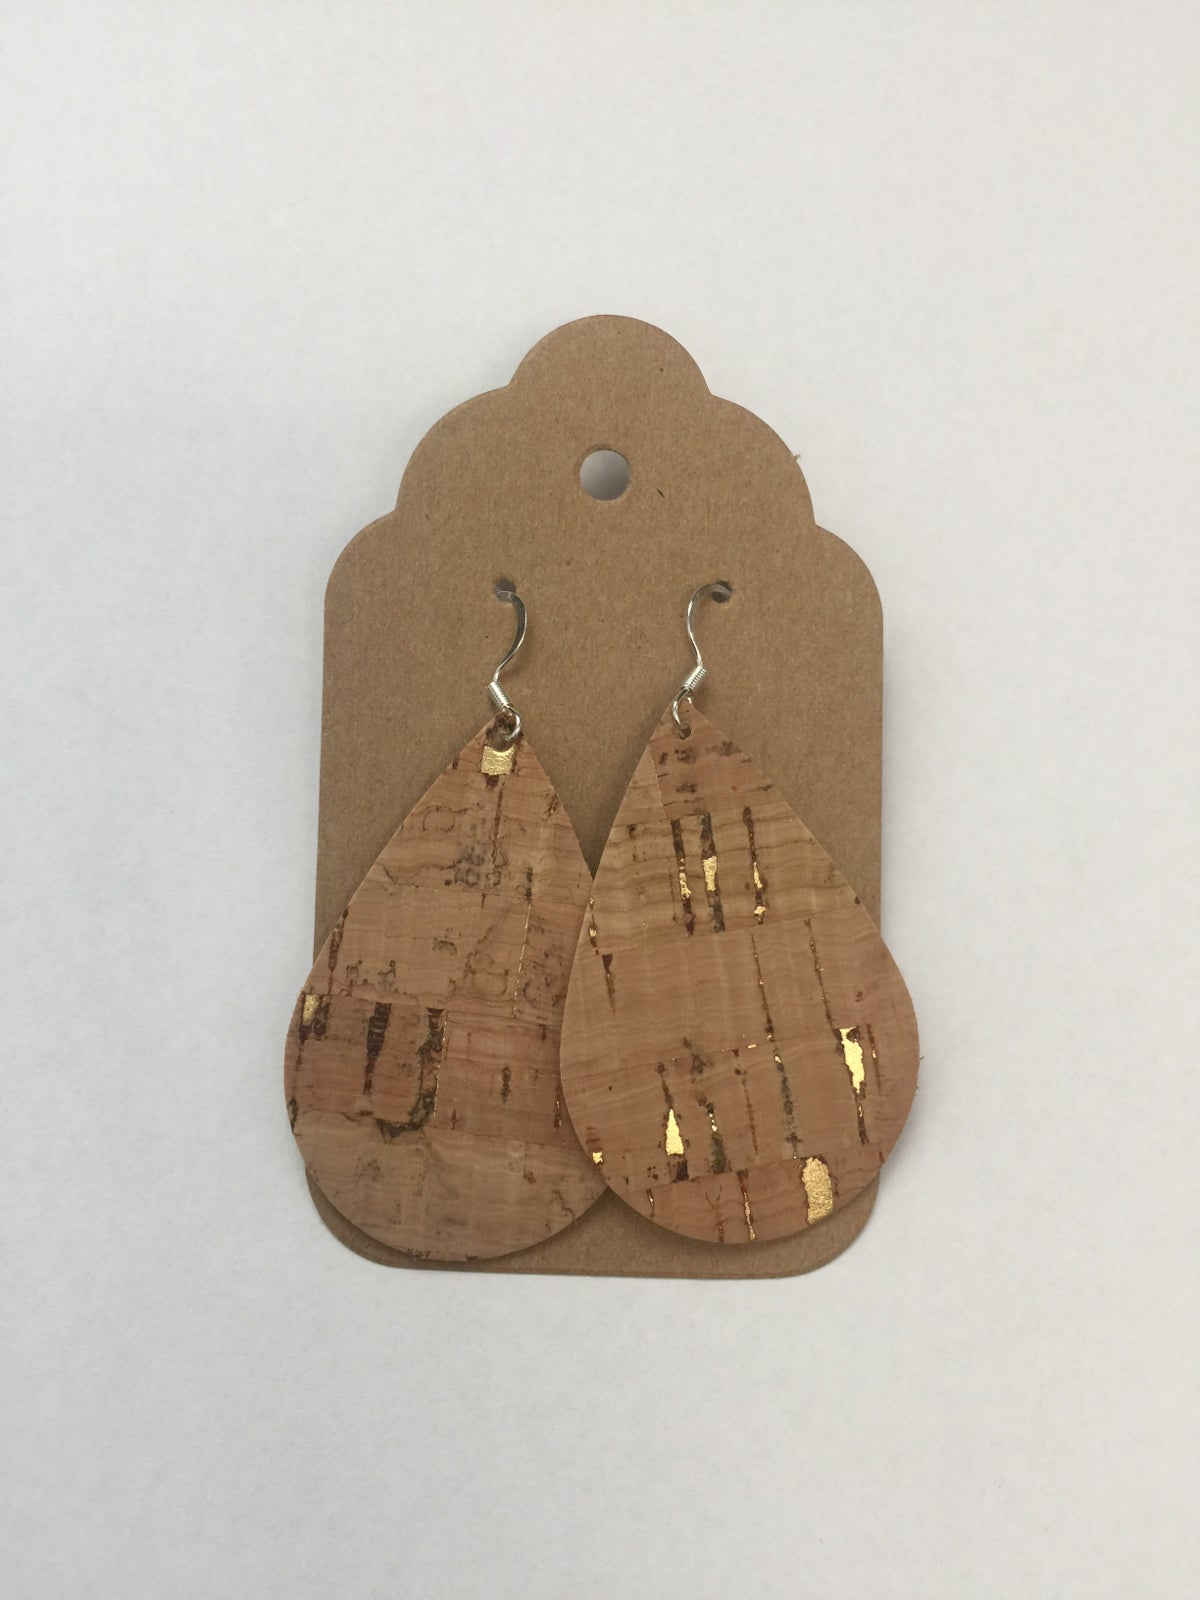 Image of Cork Fabric Earrings - Cork with gold accents